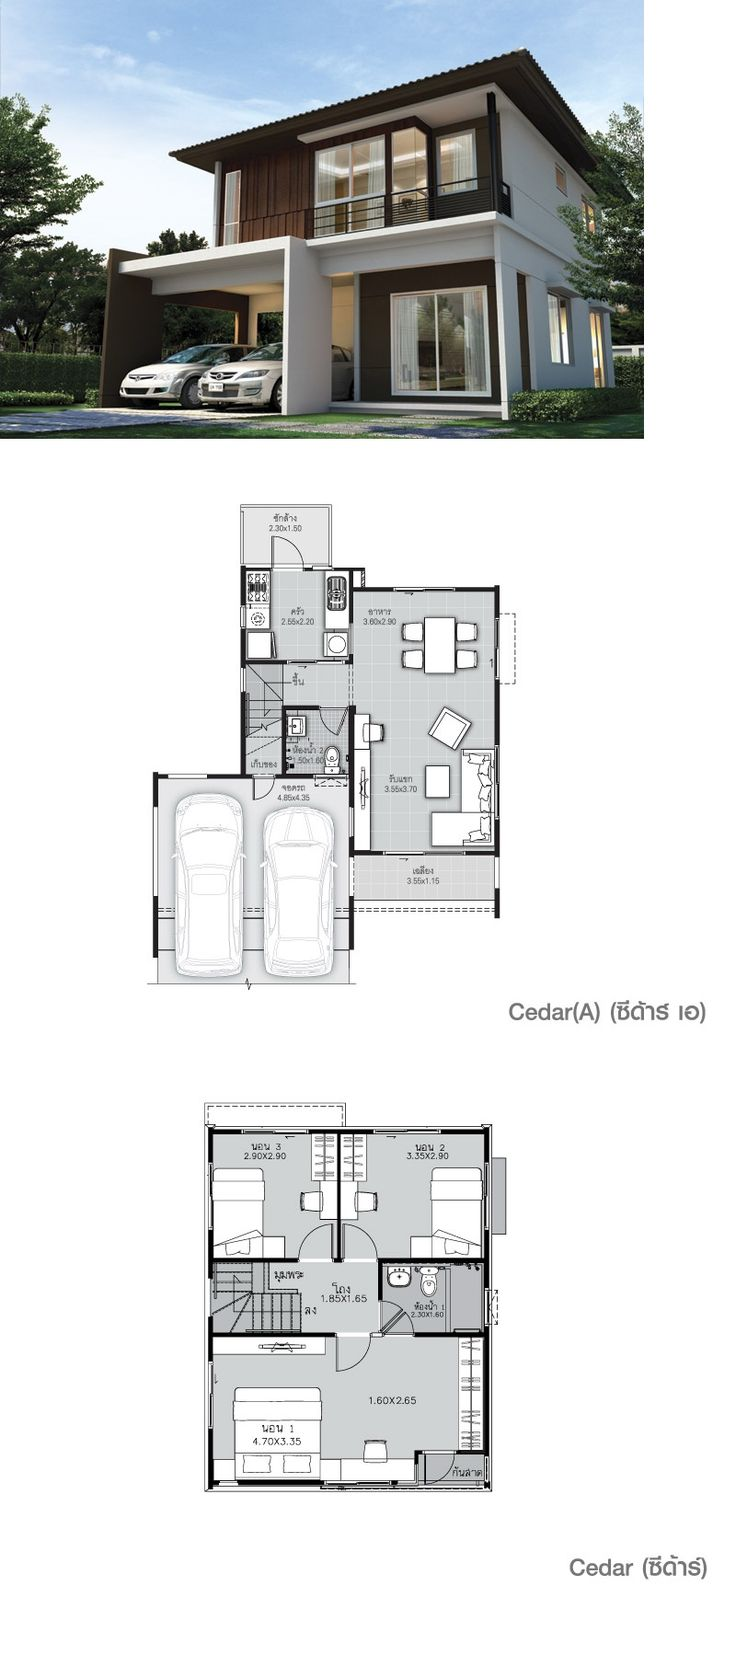 CEDAR A 134 best floorplans images on